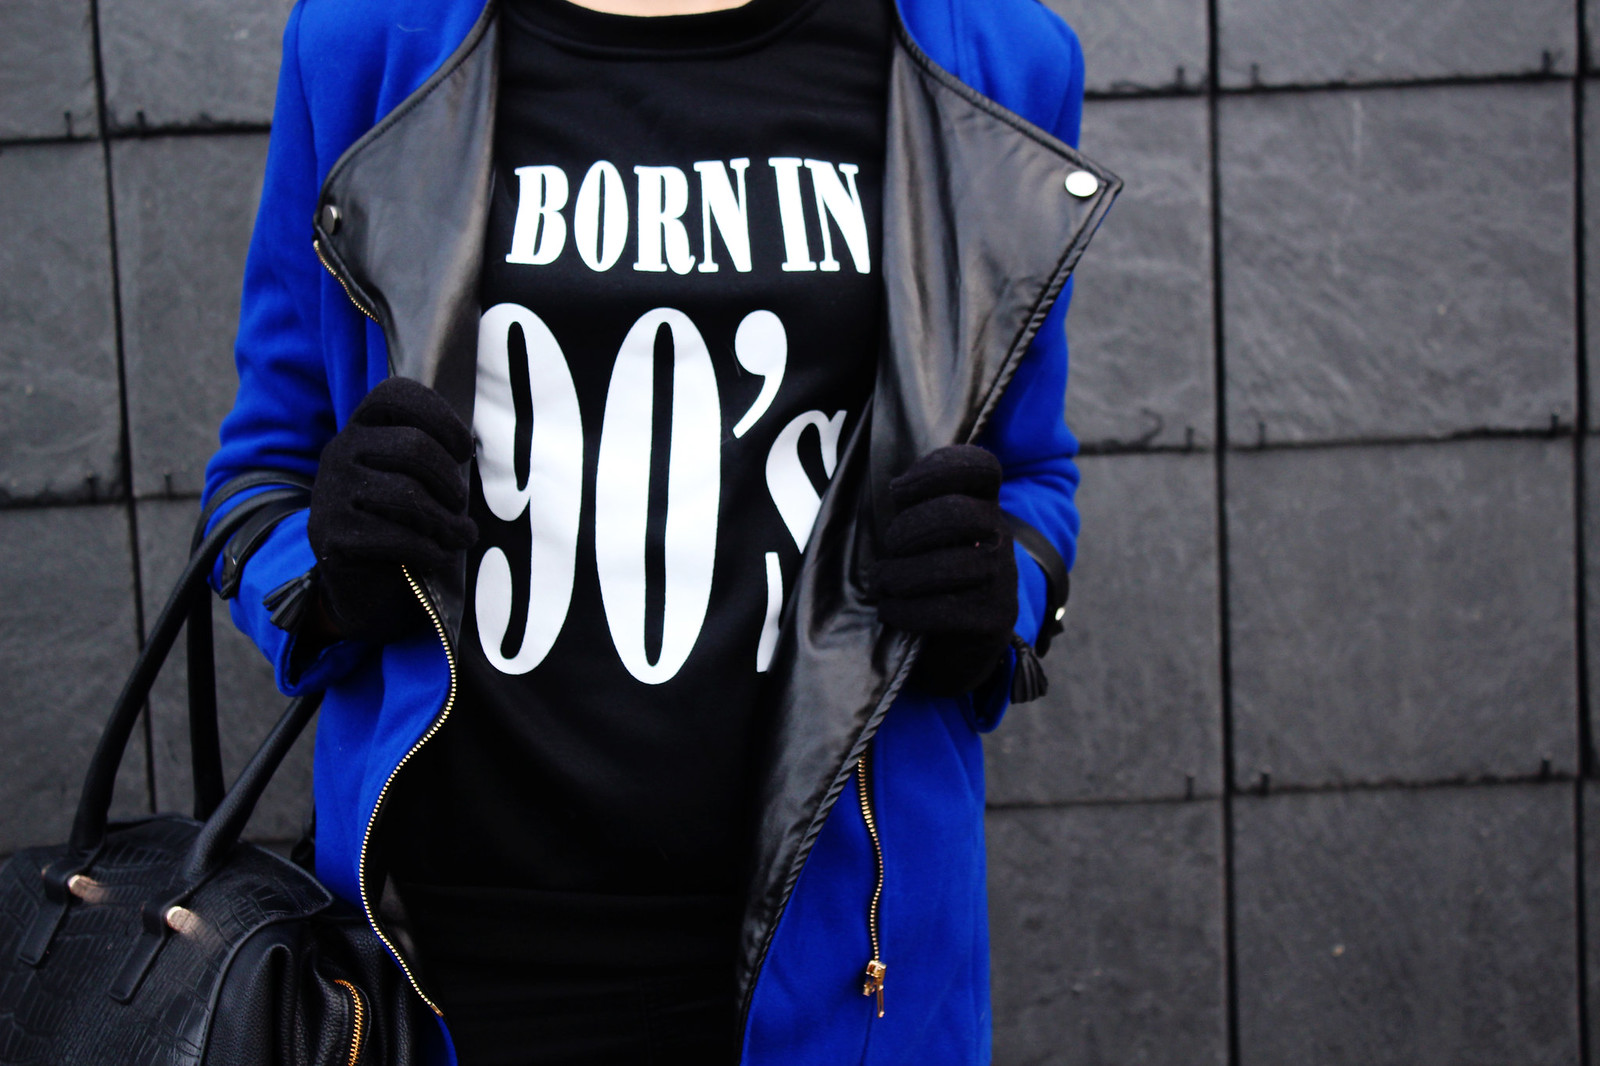 born in 90's sweatshirt